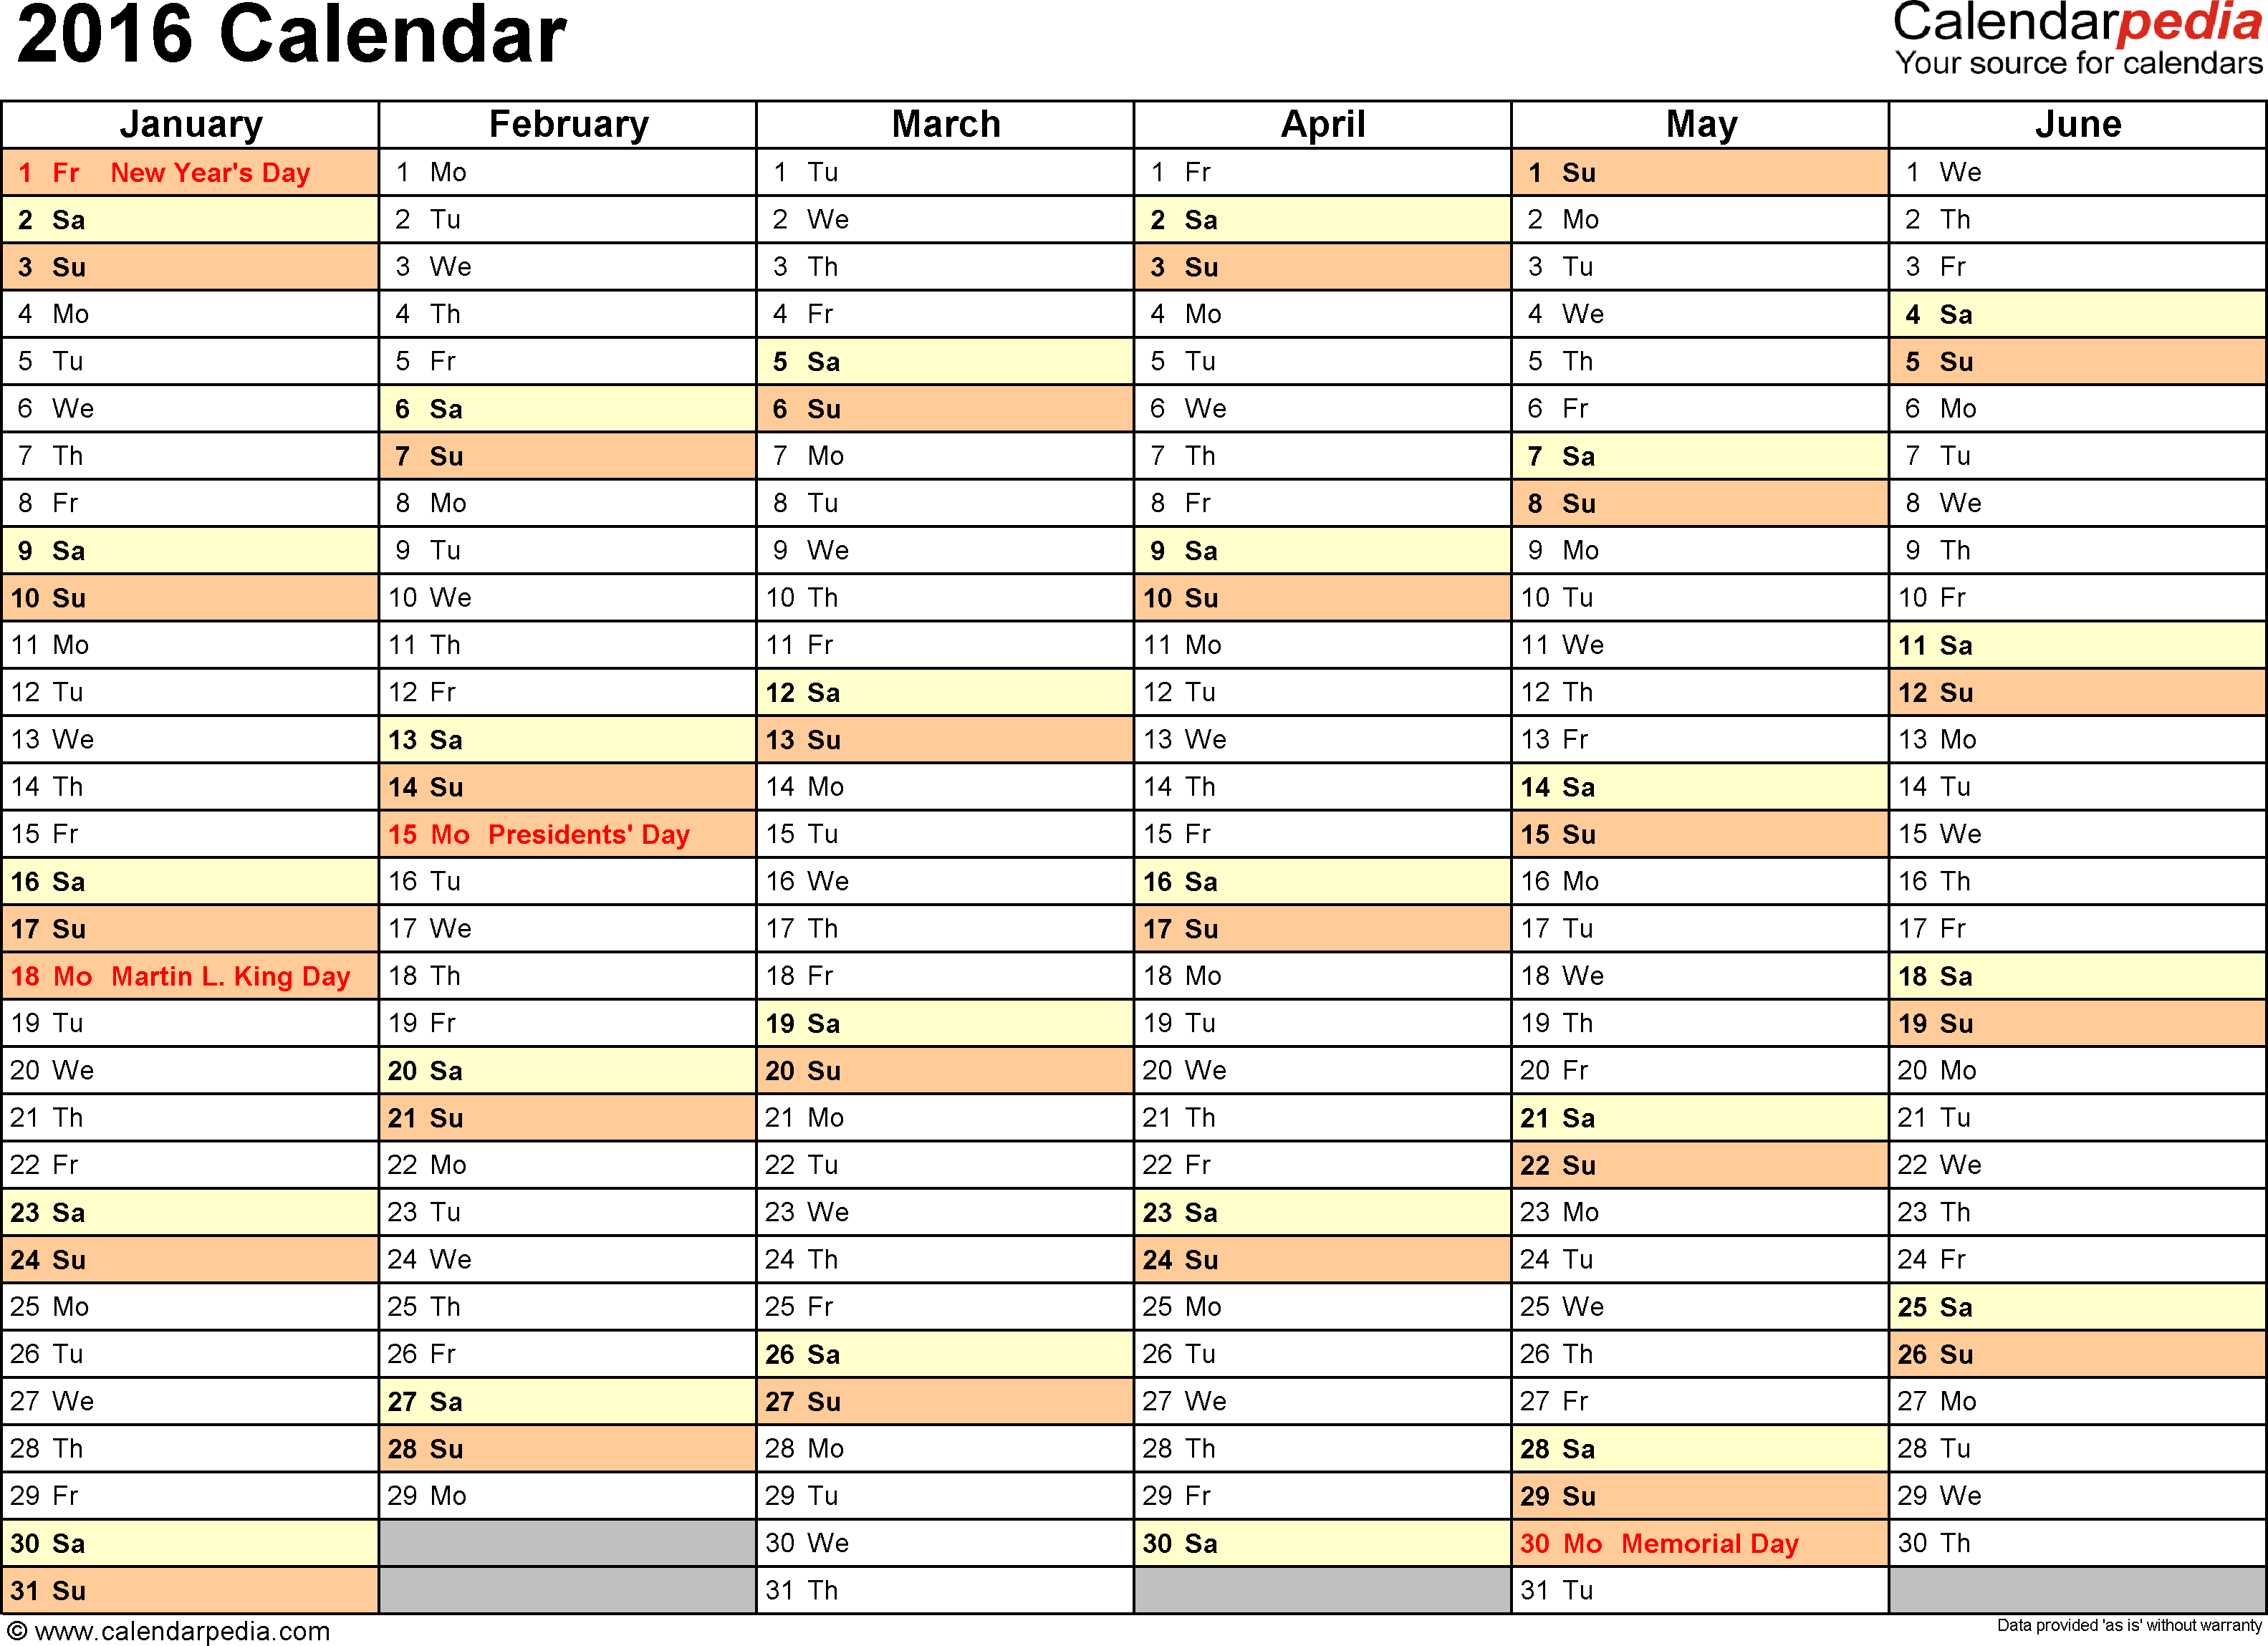 Ediblewildsus  Marvelous  Calendar  Download  Free Printable Excel Templates Xls With Interesting Template   Calendar For Excel Months Horizontally  Pages Landscape Orientation With Cute Nested If Statement Excel Also Excel Now In Addition How To Make A Pareto Chart In Excel And Excel Lookup Example As Well As How To Count Highlighted Cells In Excel Additionally Open Excel In Separate Windows From Calendarpediacom With Ediblewildsus  Interesting  Calendar  Download  Free Printable Excel Templates Xls With Cute Template   Calendar For Excel Months Horizontally  Pages Landscape Orientation And Marvelous Nested If Statement Excel Also Excel Now In Addition How To Make A Pareto Chart In Excel From Calendarpediacom